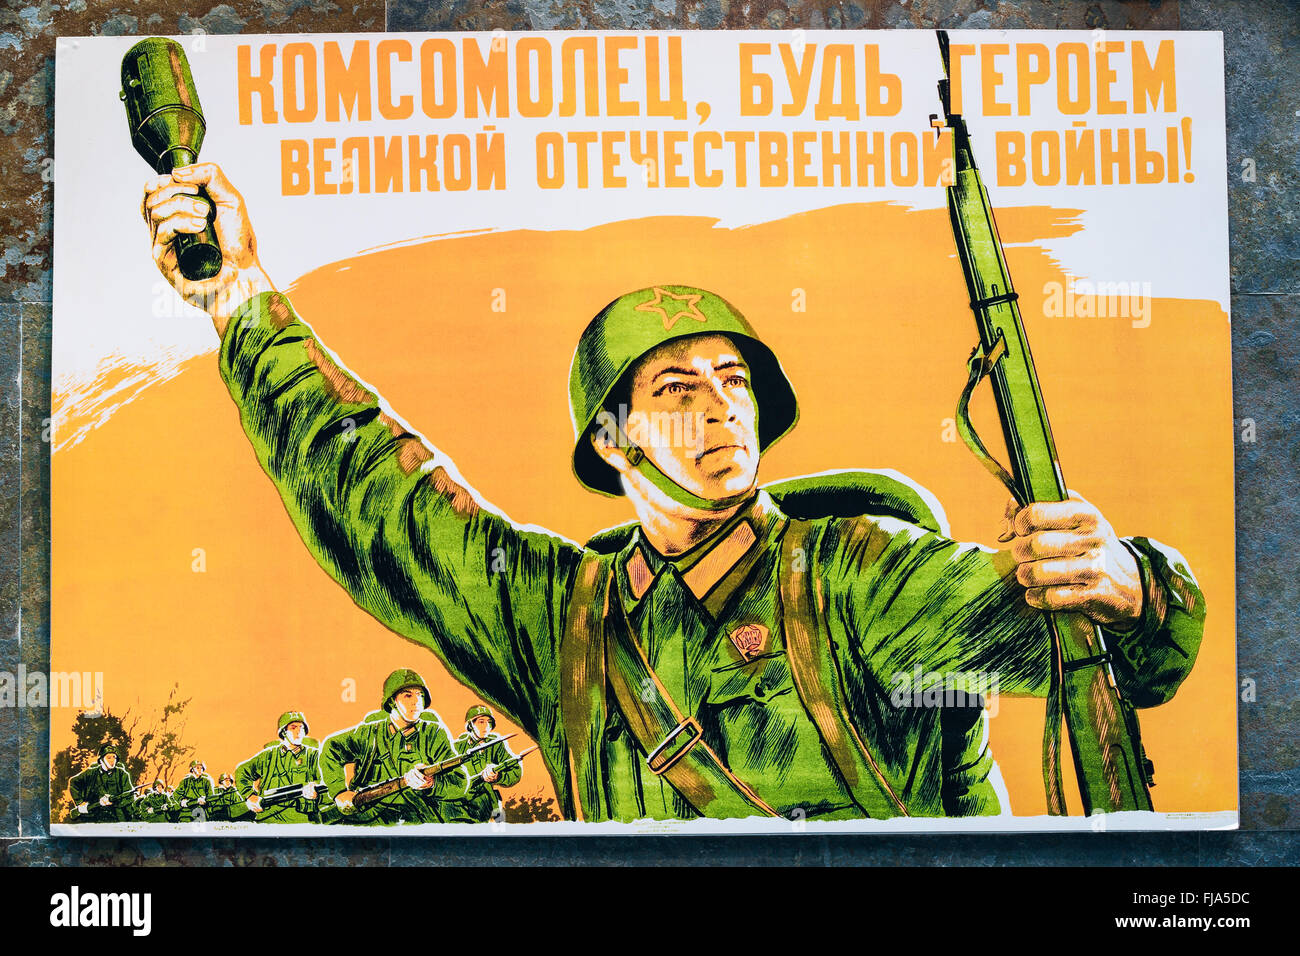 Soviet russian patriotic propaganda poster from World War II with image of soldier going on attack with rifle and - Stock Image